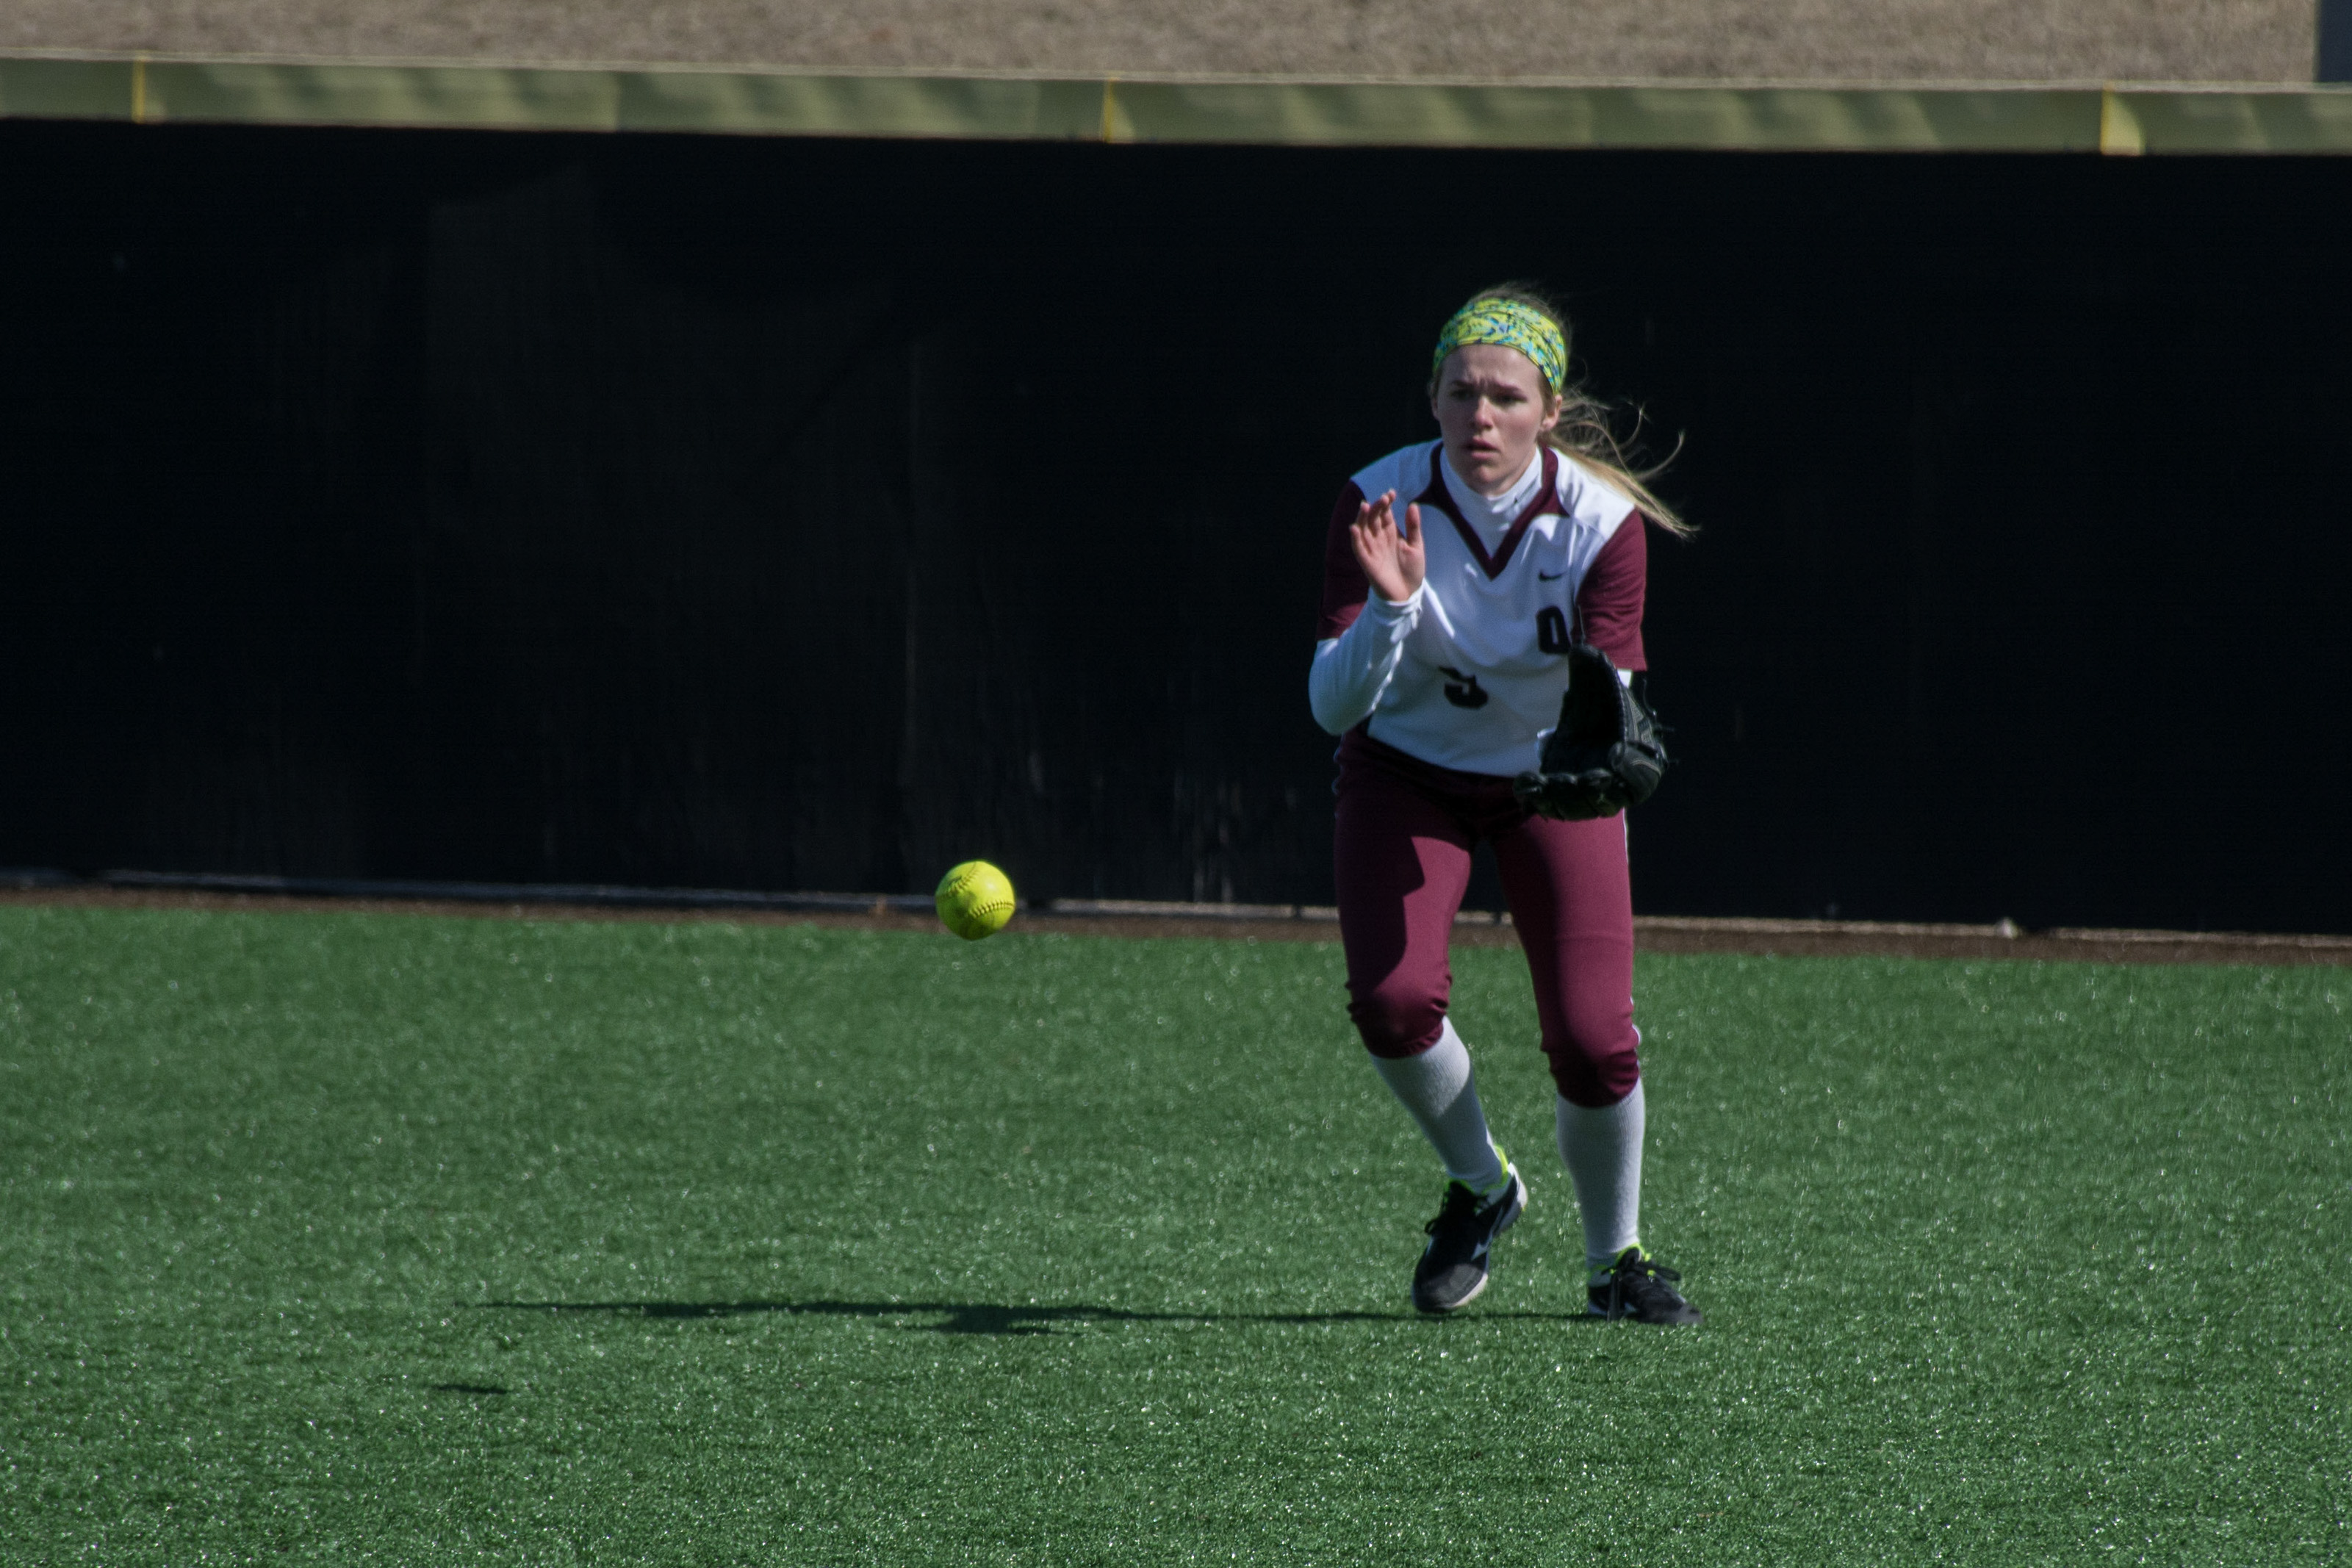 Haley Squier prepares to receive Fort Hays' hit on April 12. Photo by Abby Bellow.